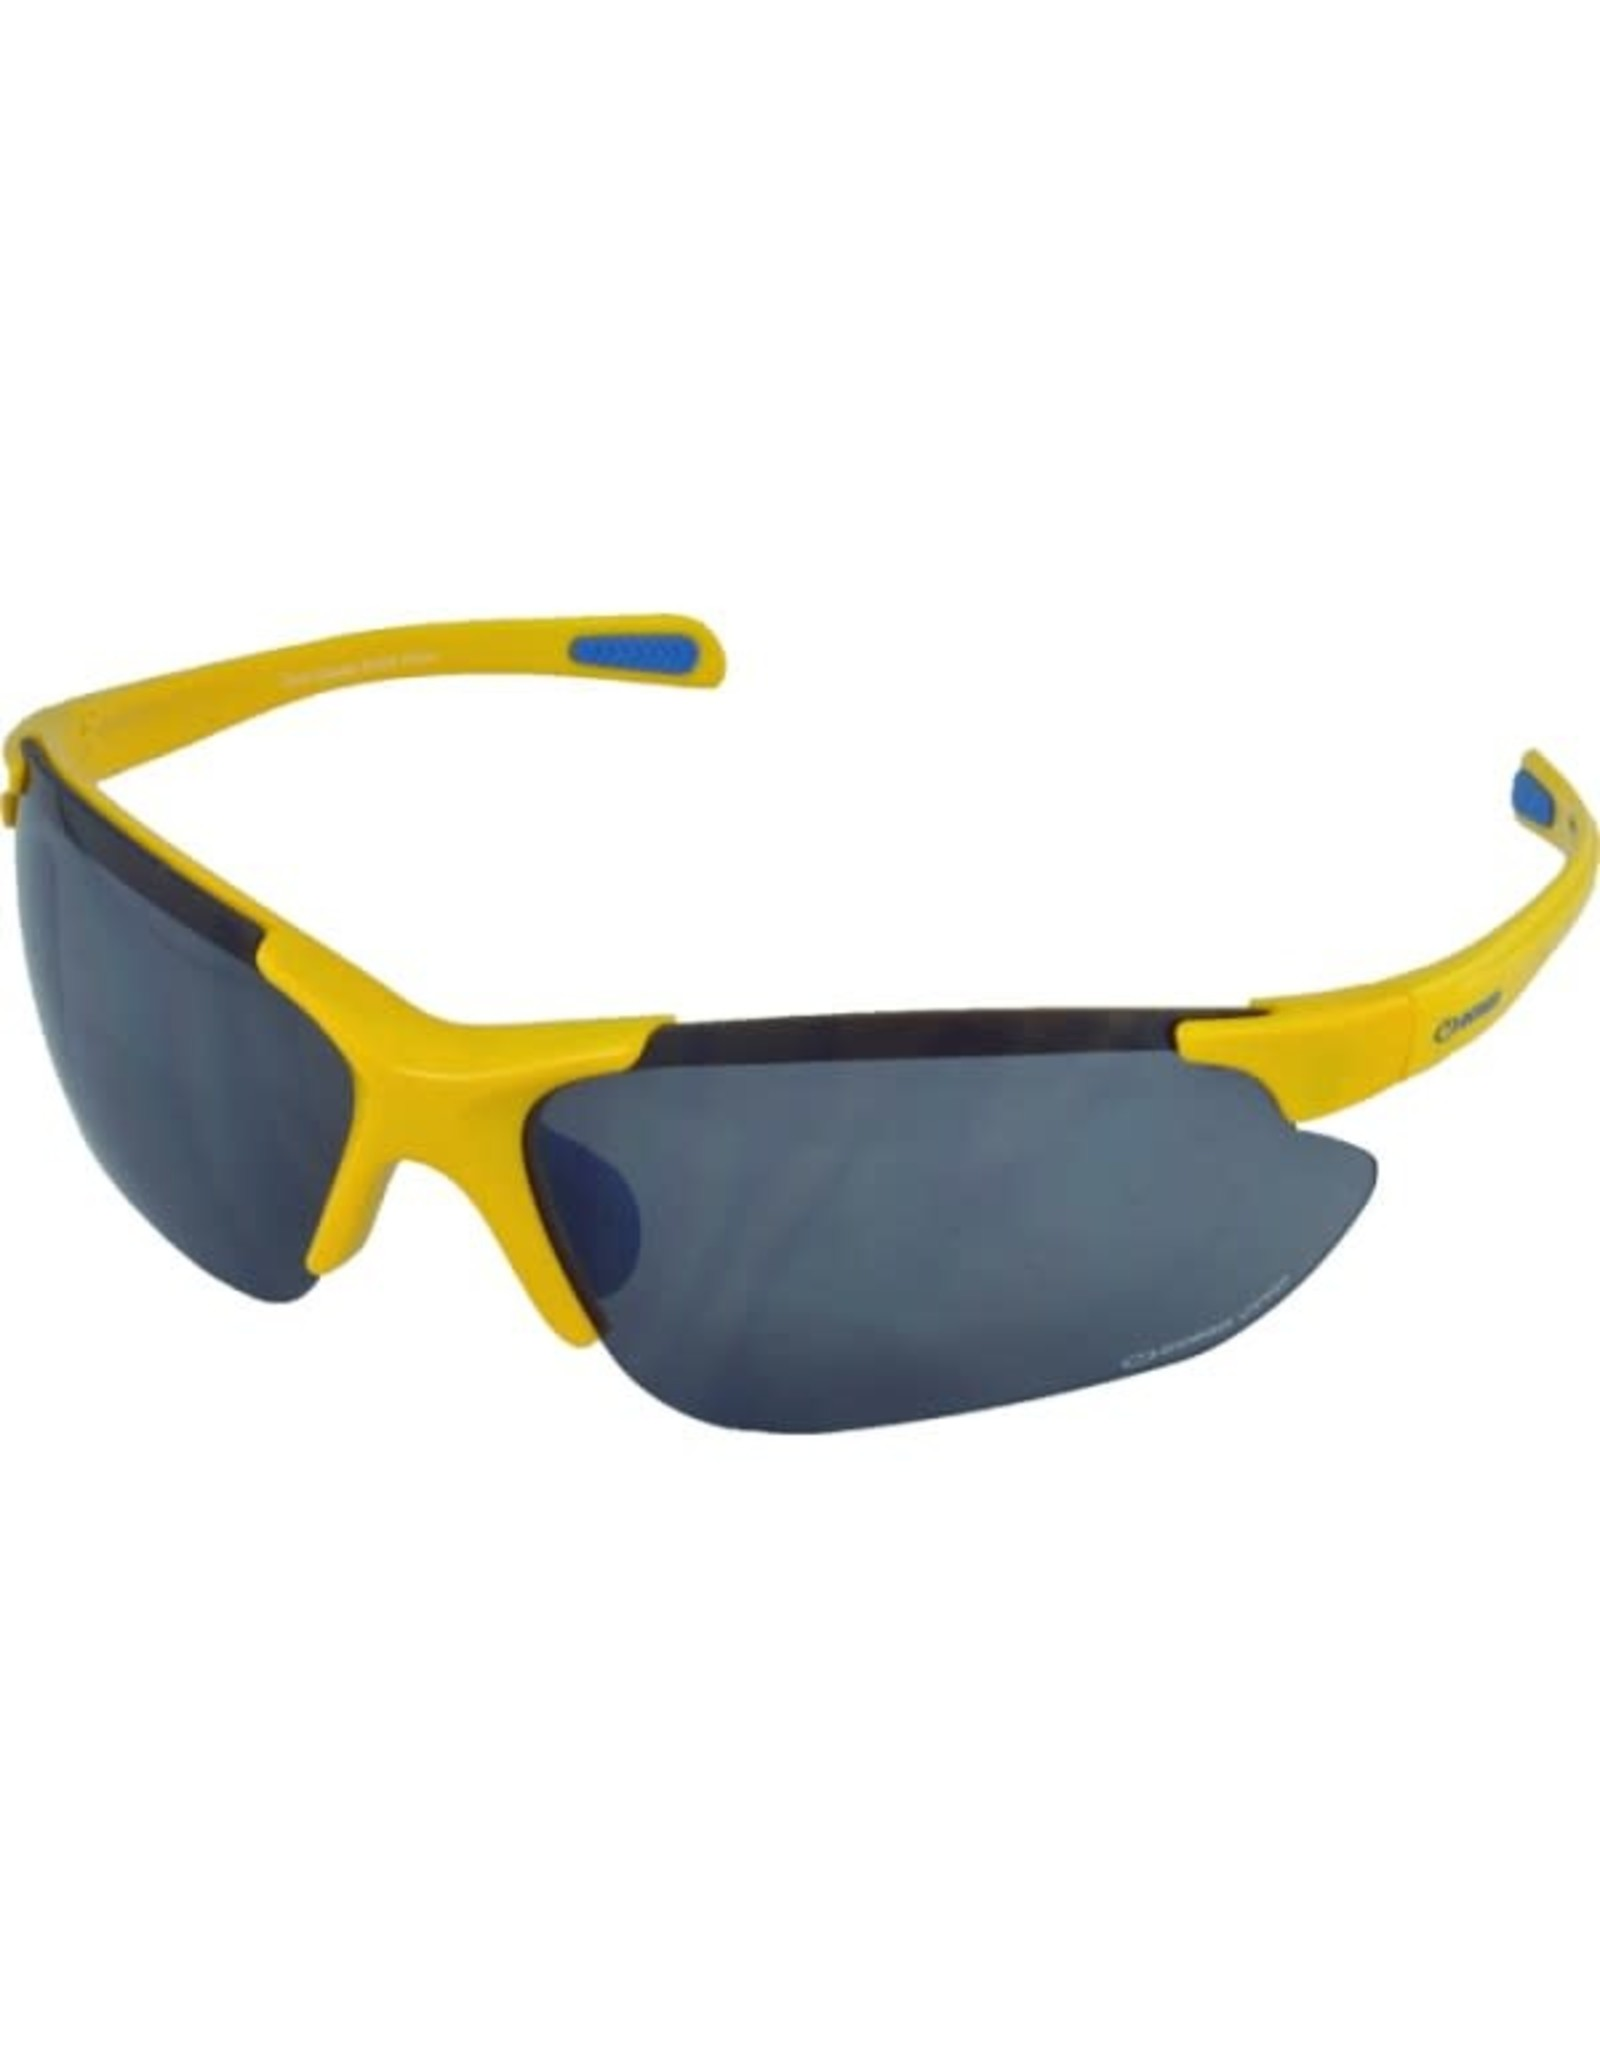 Ocean Sunglasses 30-404 UV 400 Yellow